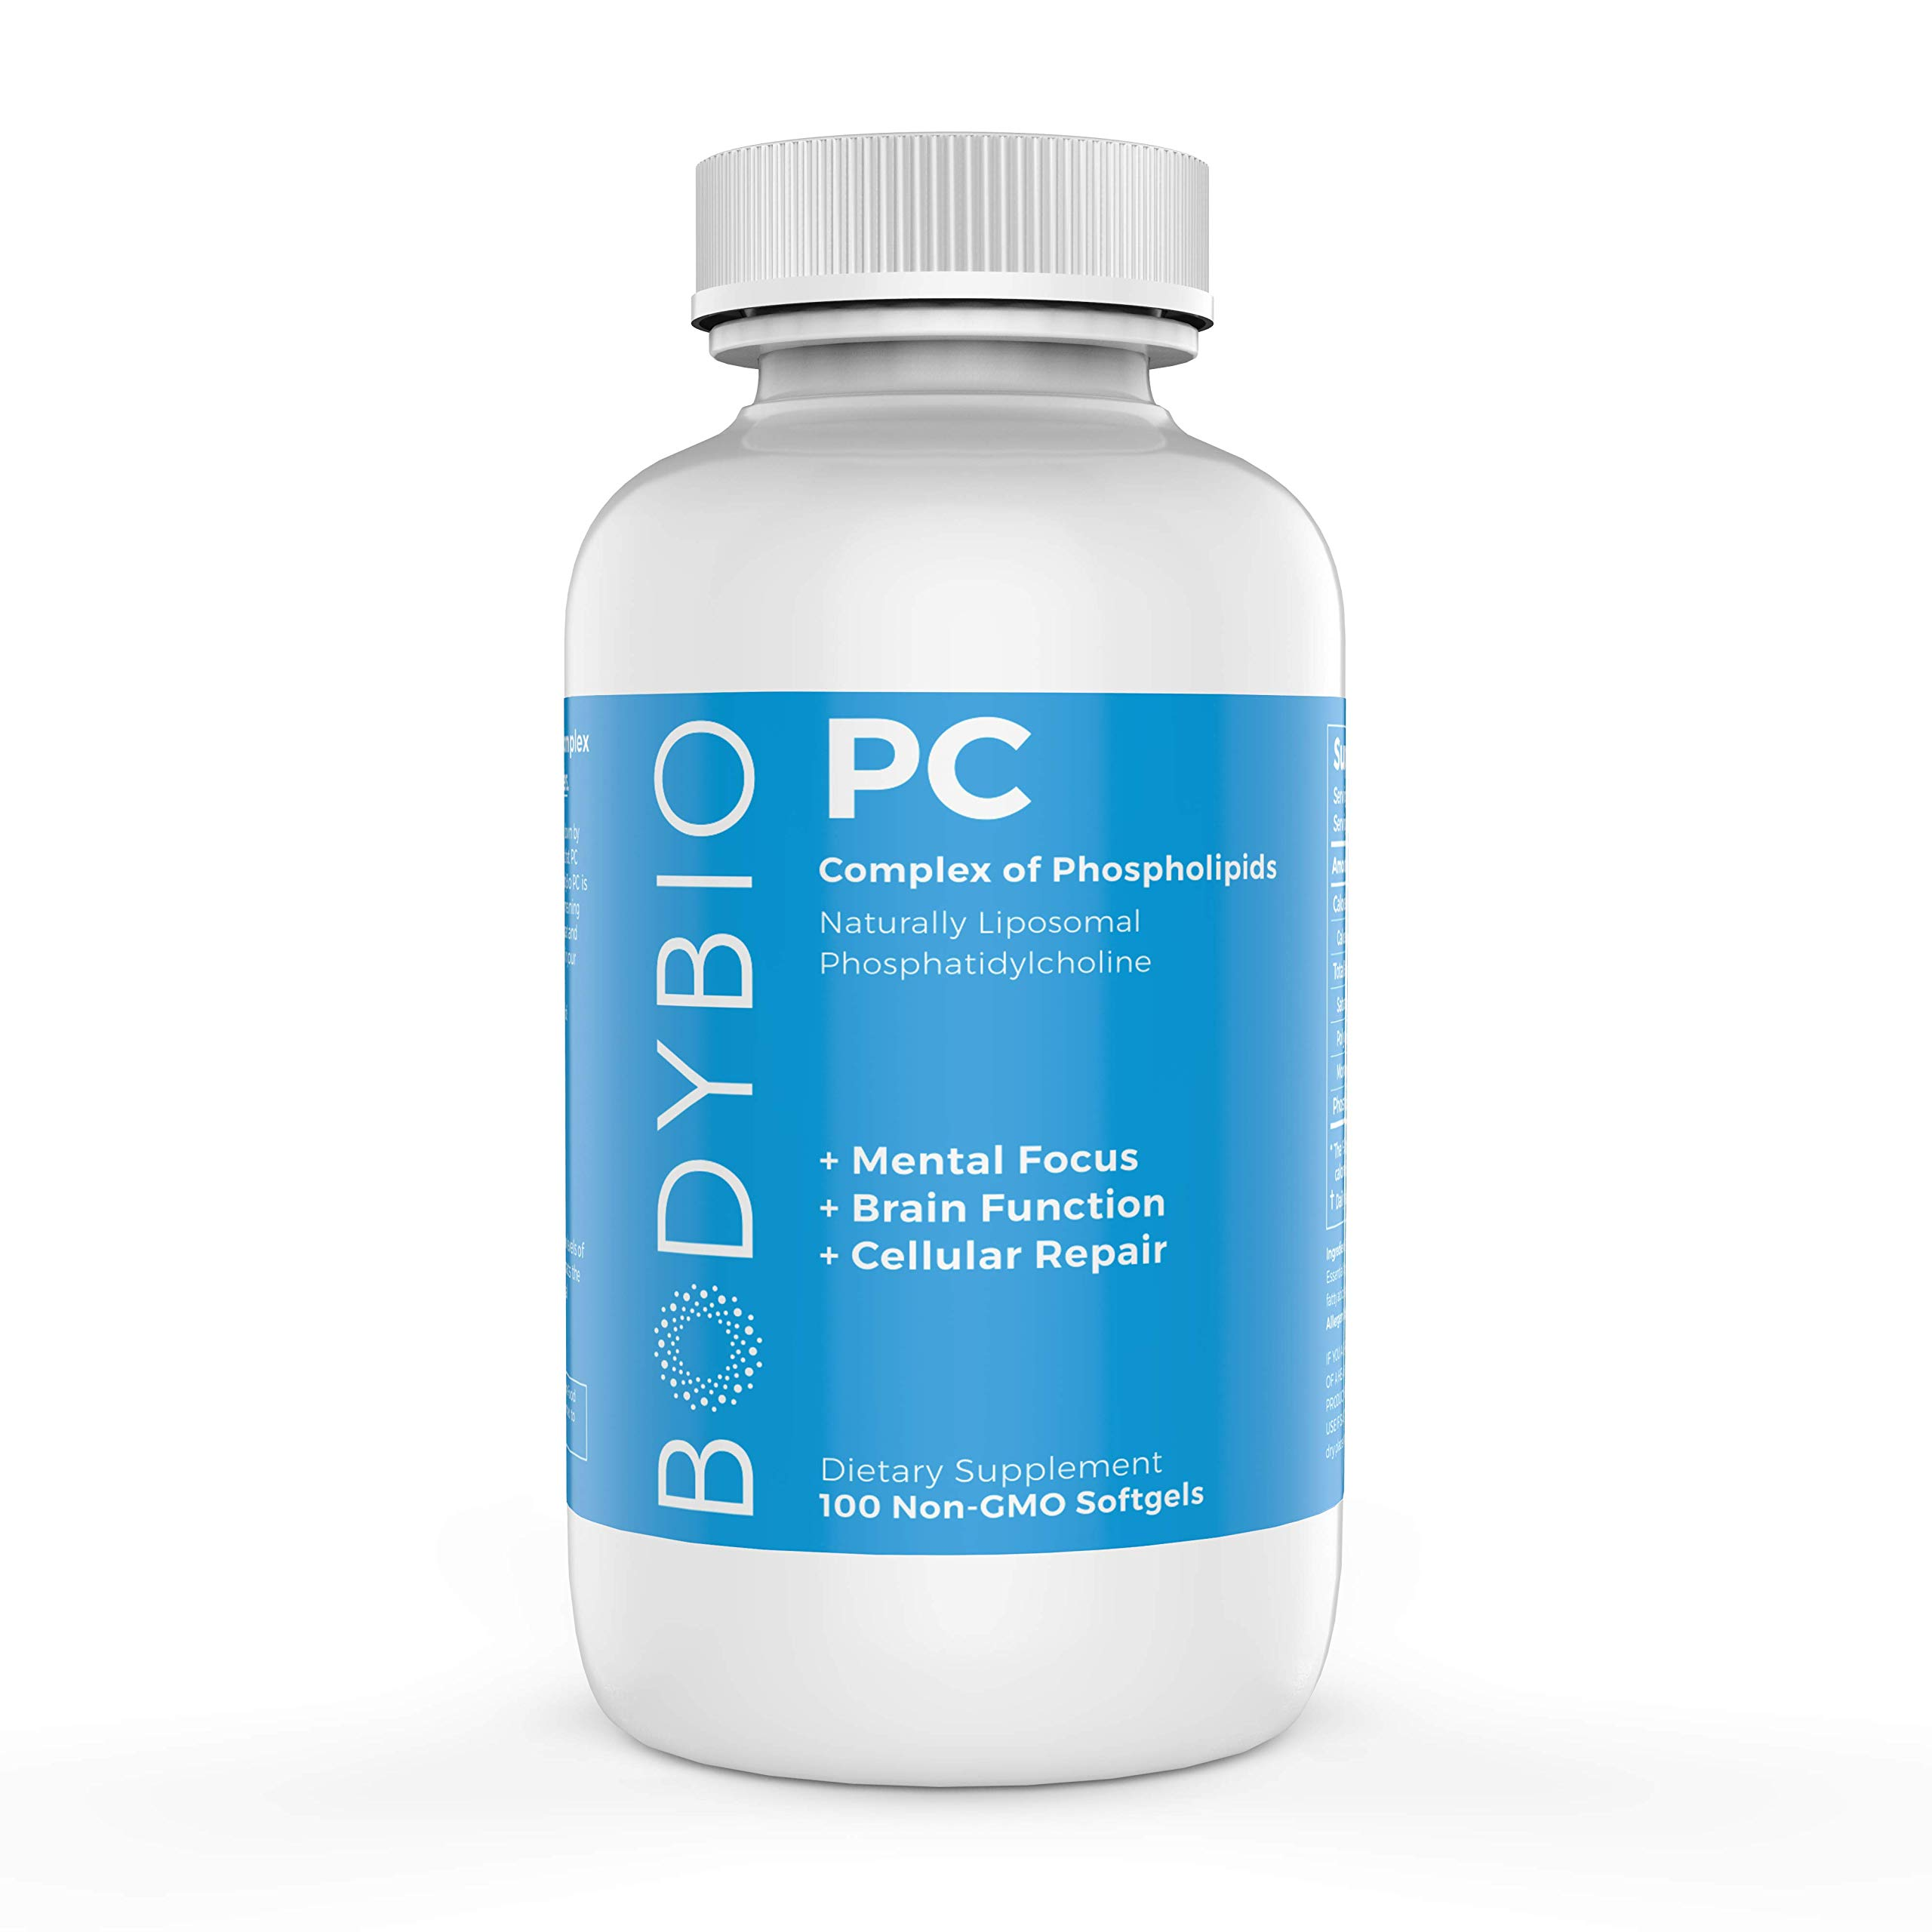 BodyBio - PC Phosphatidylcholine, 1300mg, Phospholipid Complex, 100 Softgels